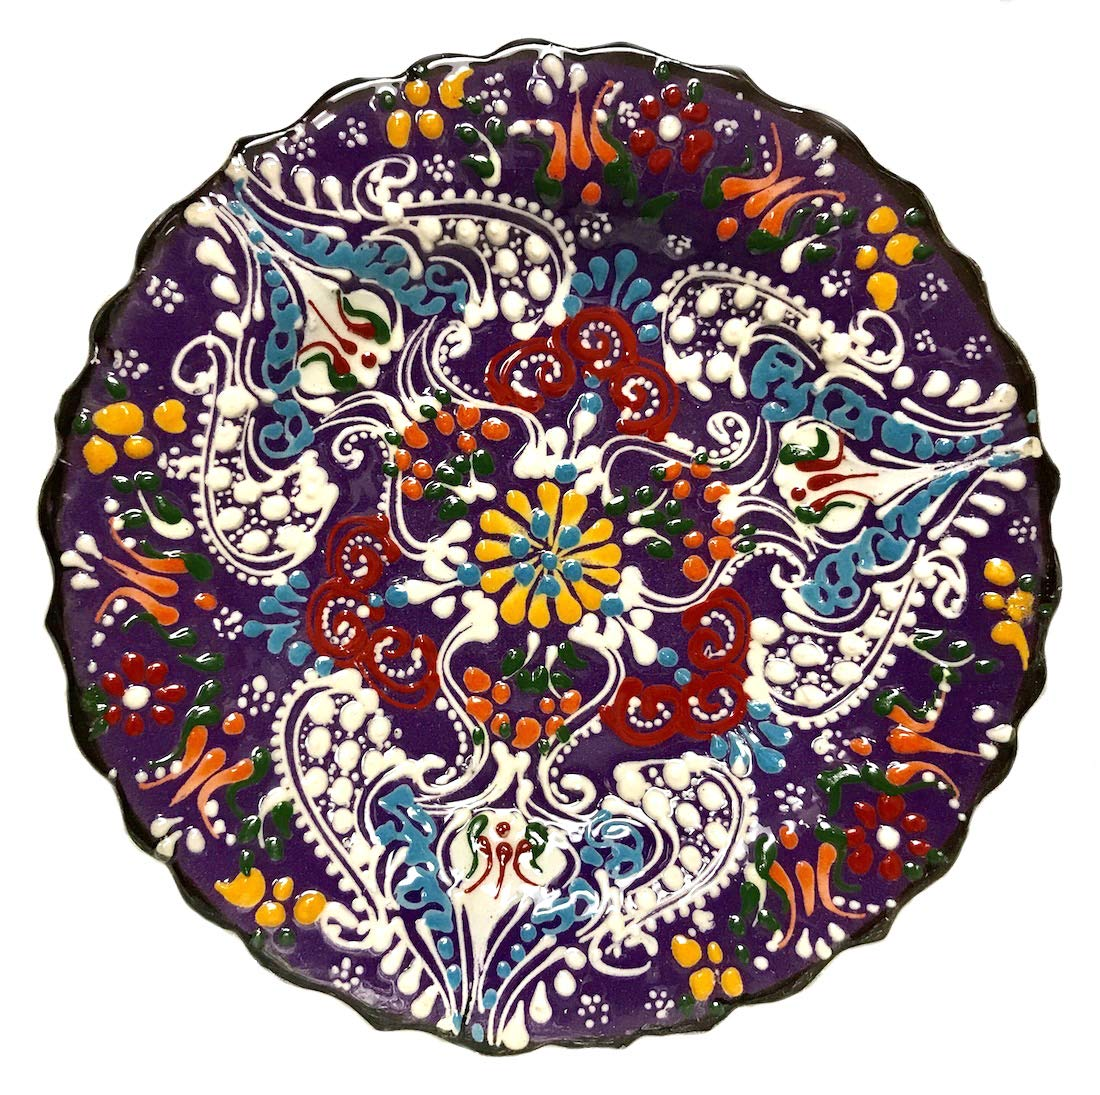 Nazar Turkish Imports ~Hand Painted Ceramic Plate-d:7 inch-purple